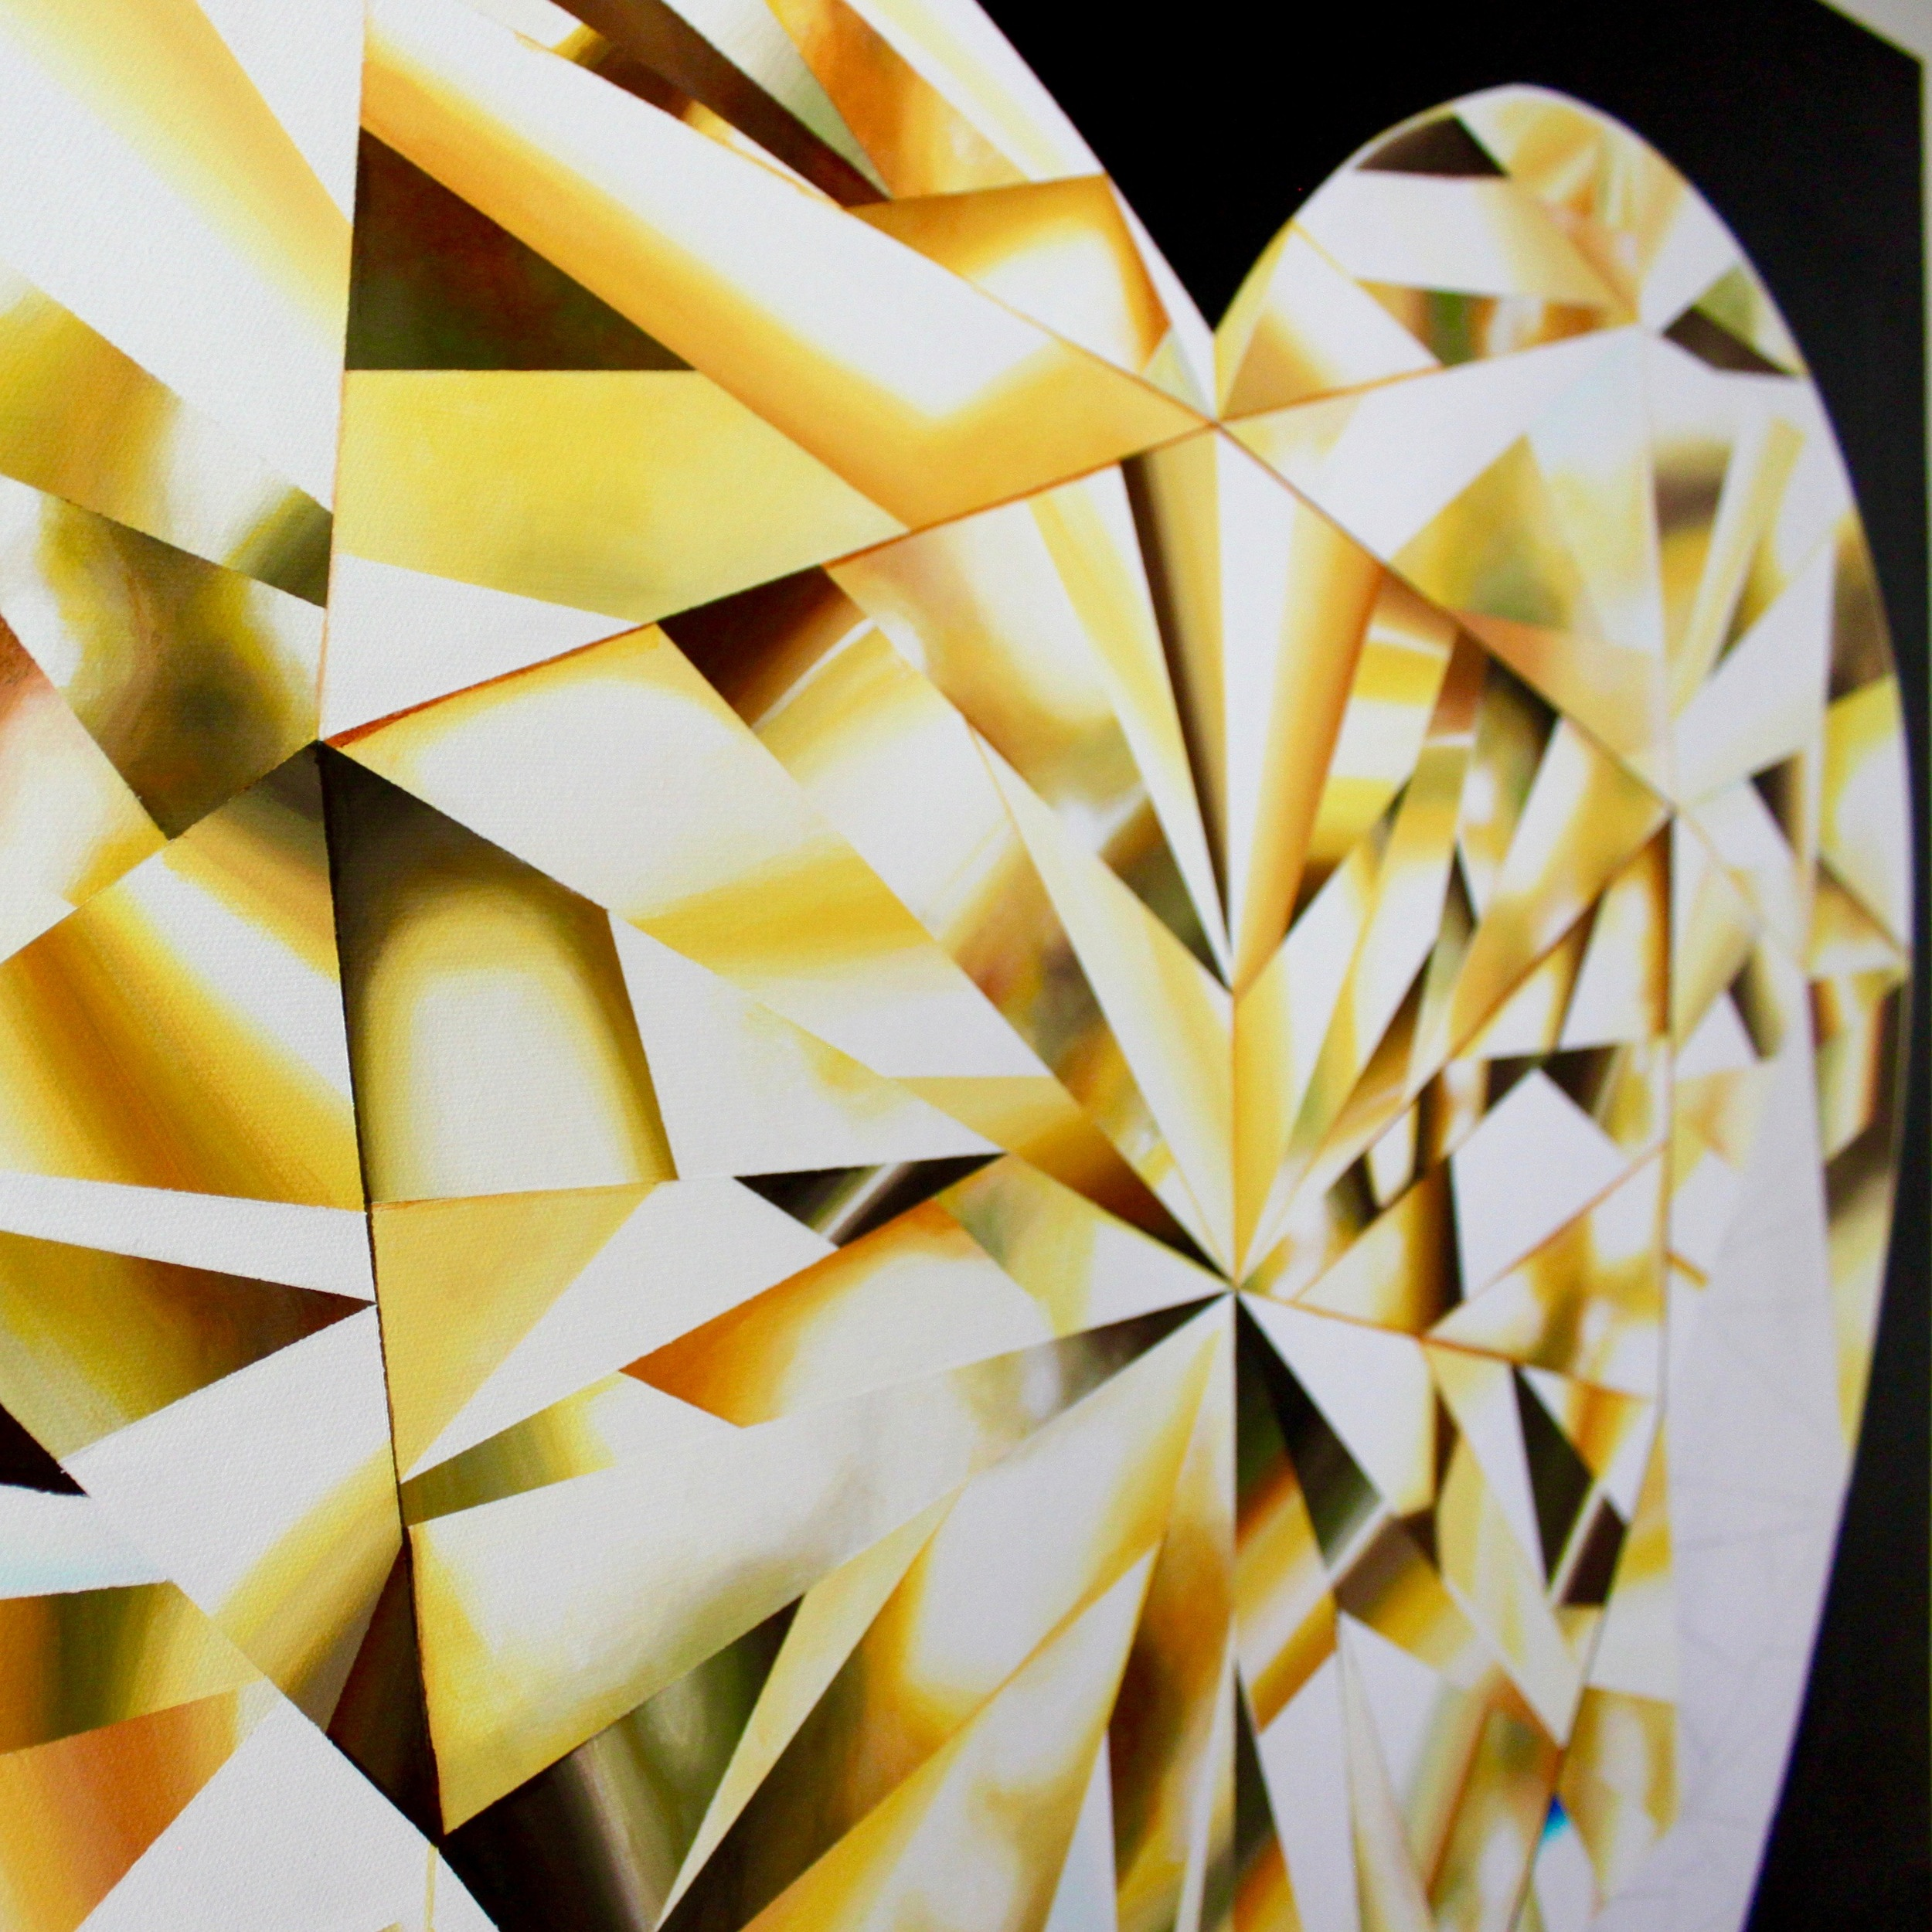 Setting heart on fire, one facet at a time! Progress of 'Heart of Gold' - Portrait of a Yellow Heart-Shaped Diamond. 36 x 36 inches. Natural Diamond Dust and Acrylic on Canvas. ©Reena Ahluwalia